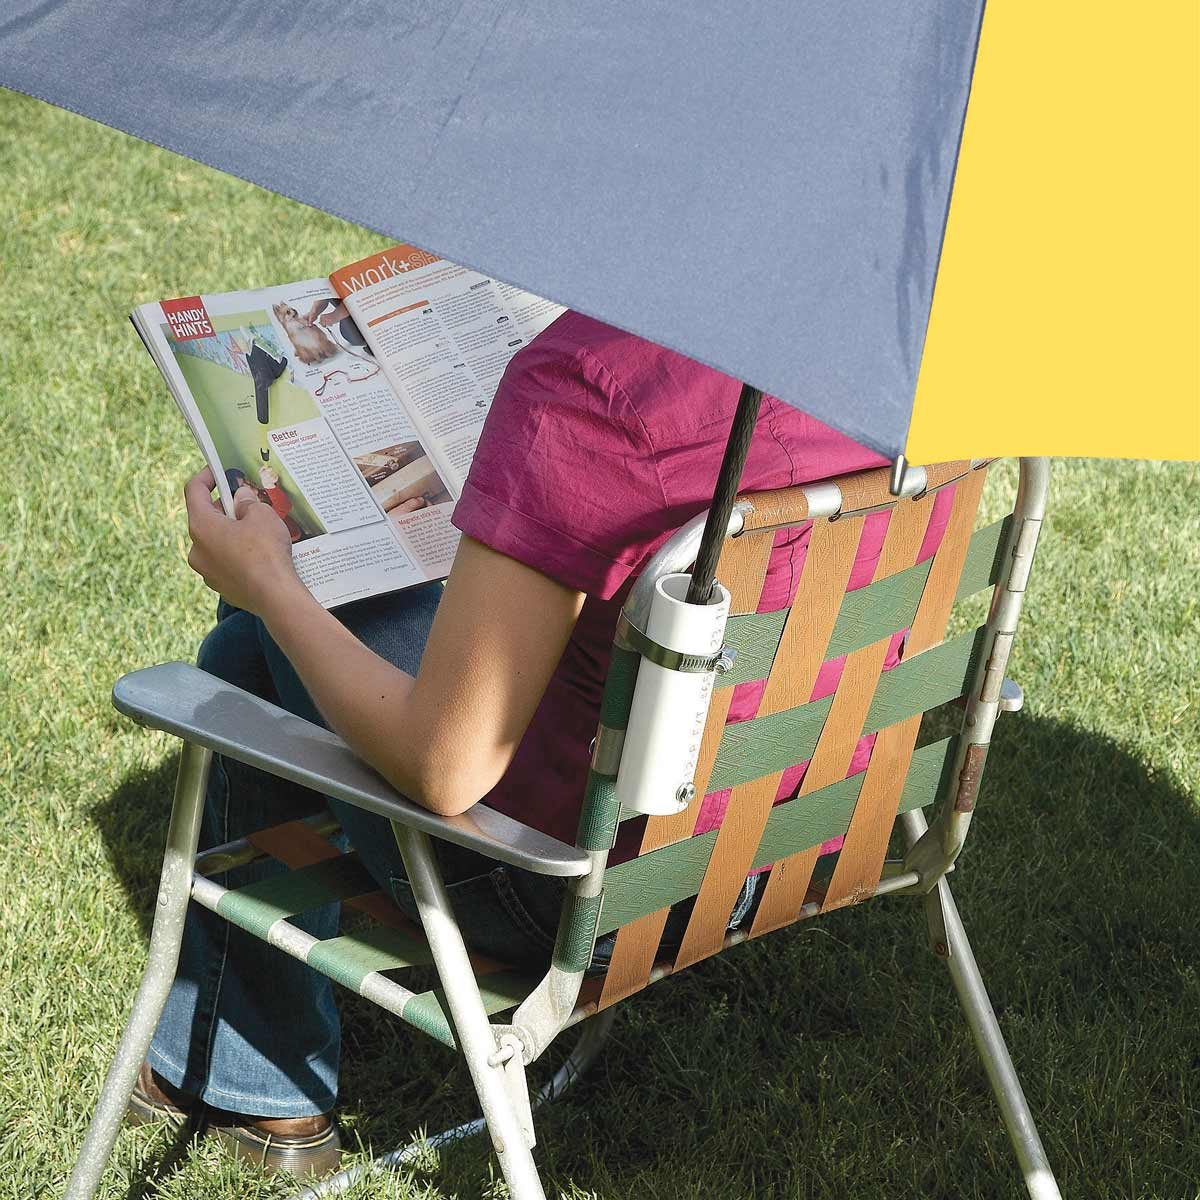 Lawn chair umbrella holder